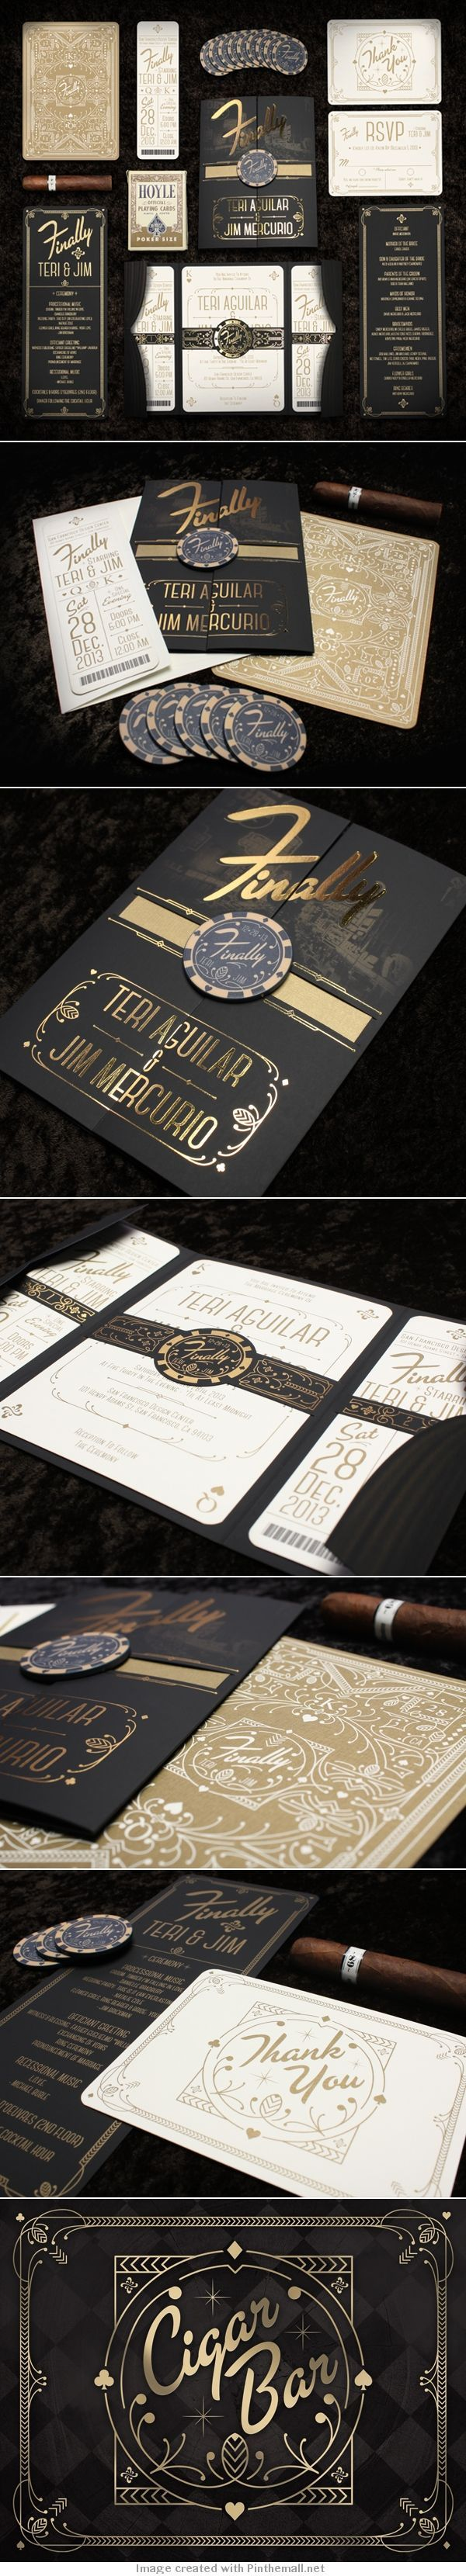 Mercurio Wedding Invitations inspiration   from the storeroom @ POTW